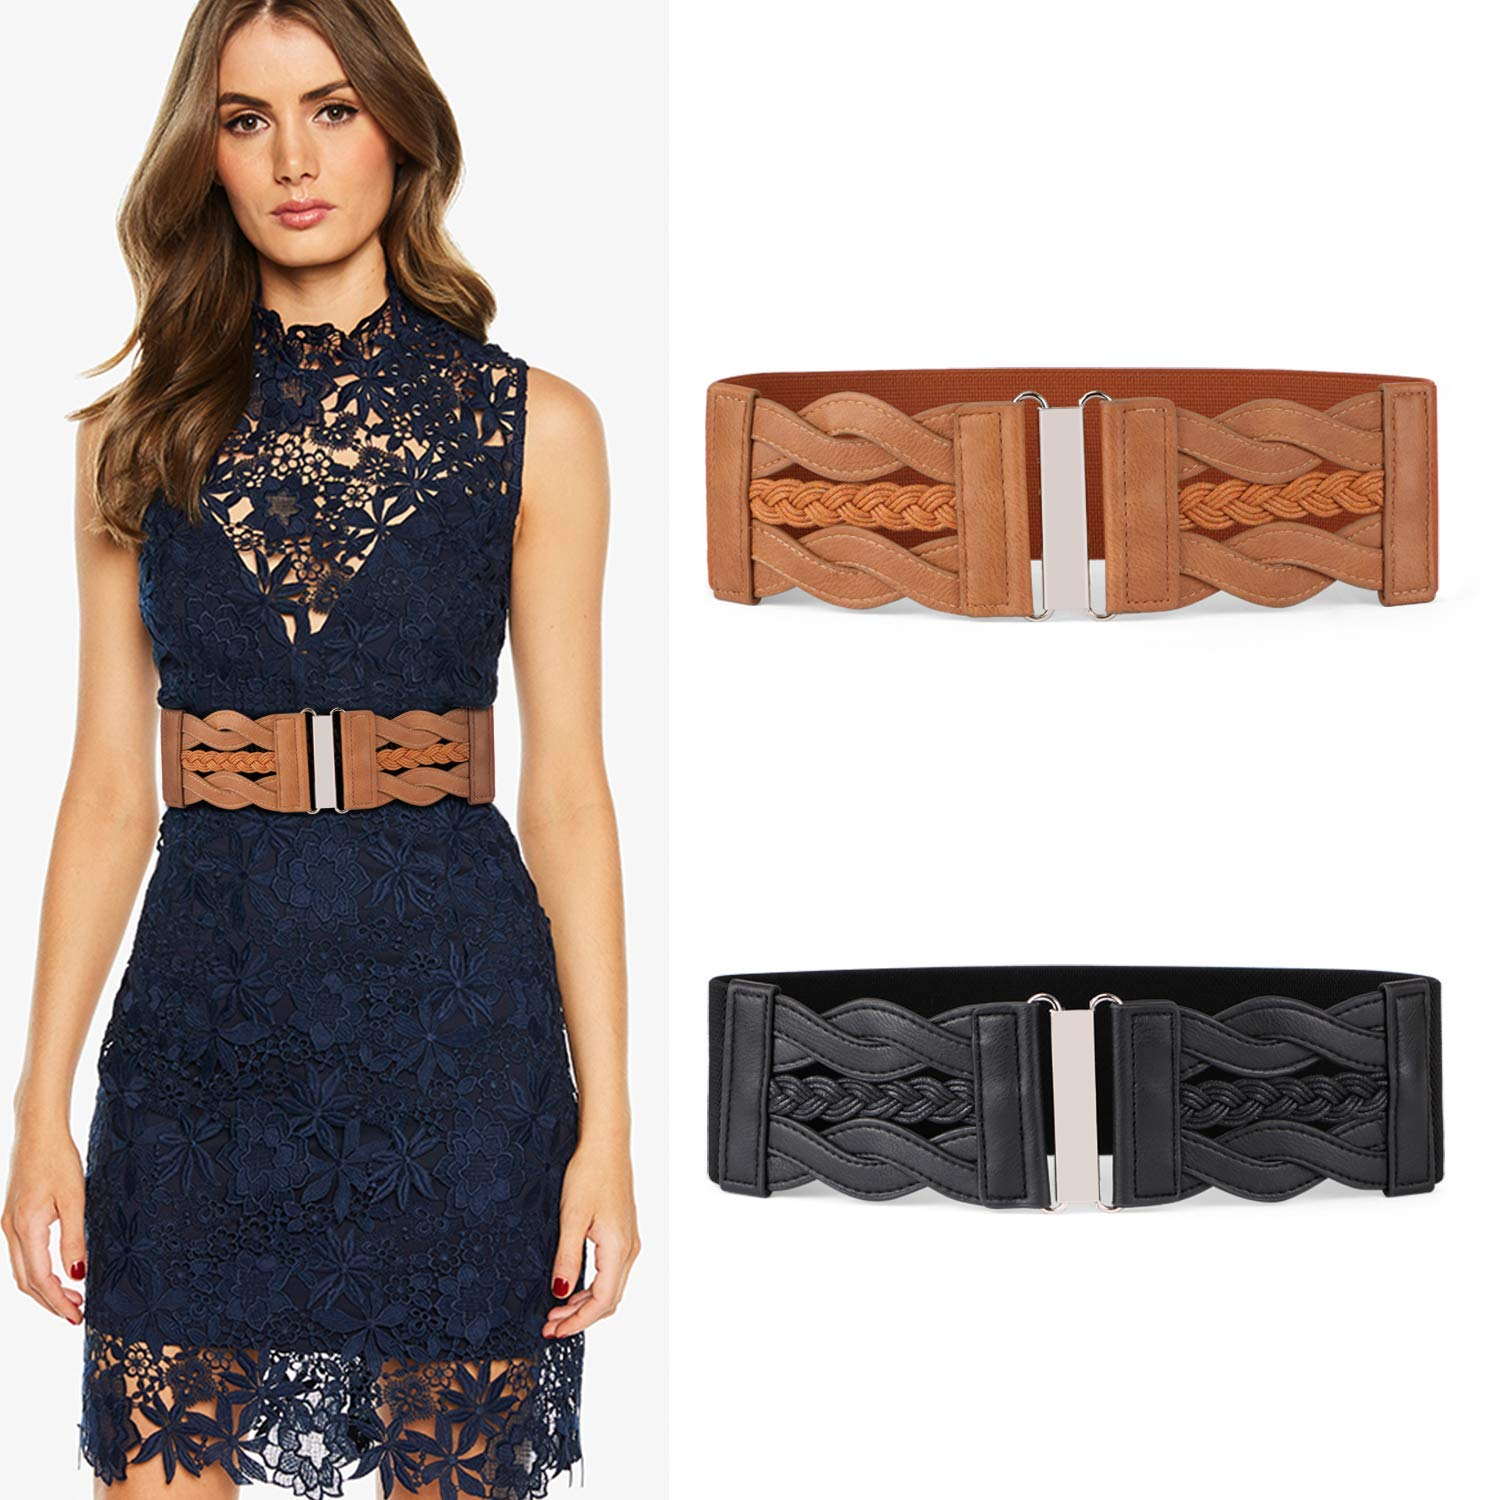 Fashion style Belt cinch how to wear for lady